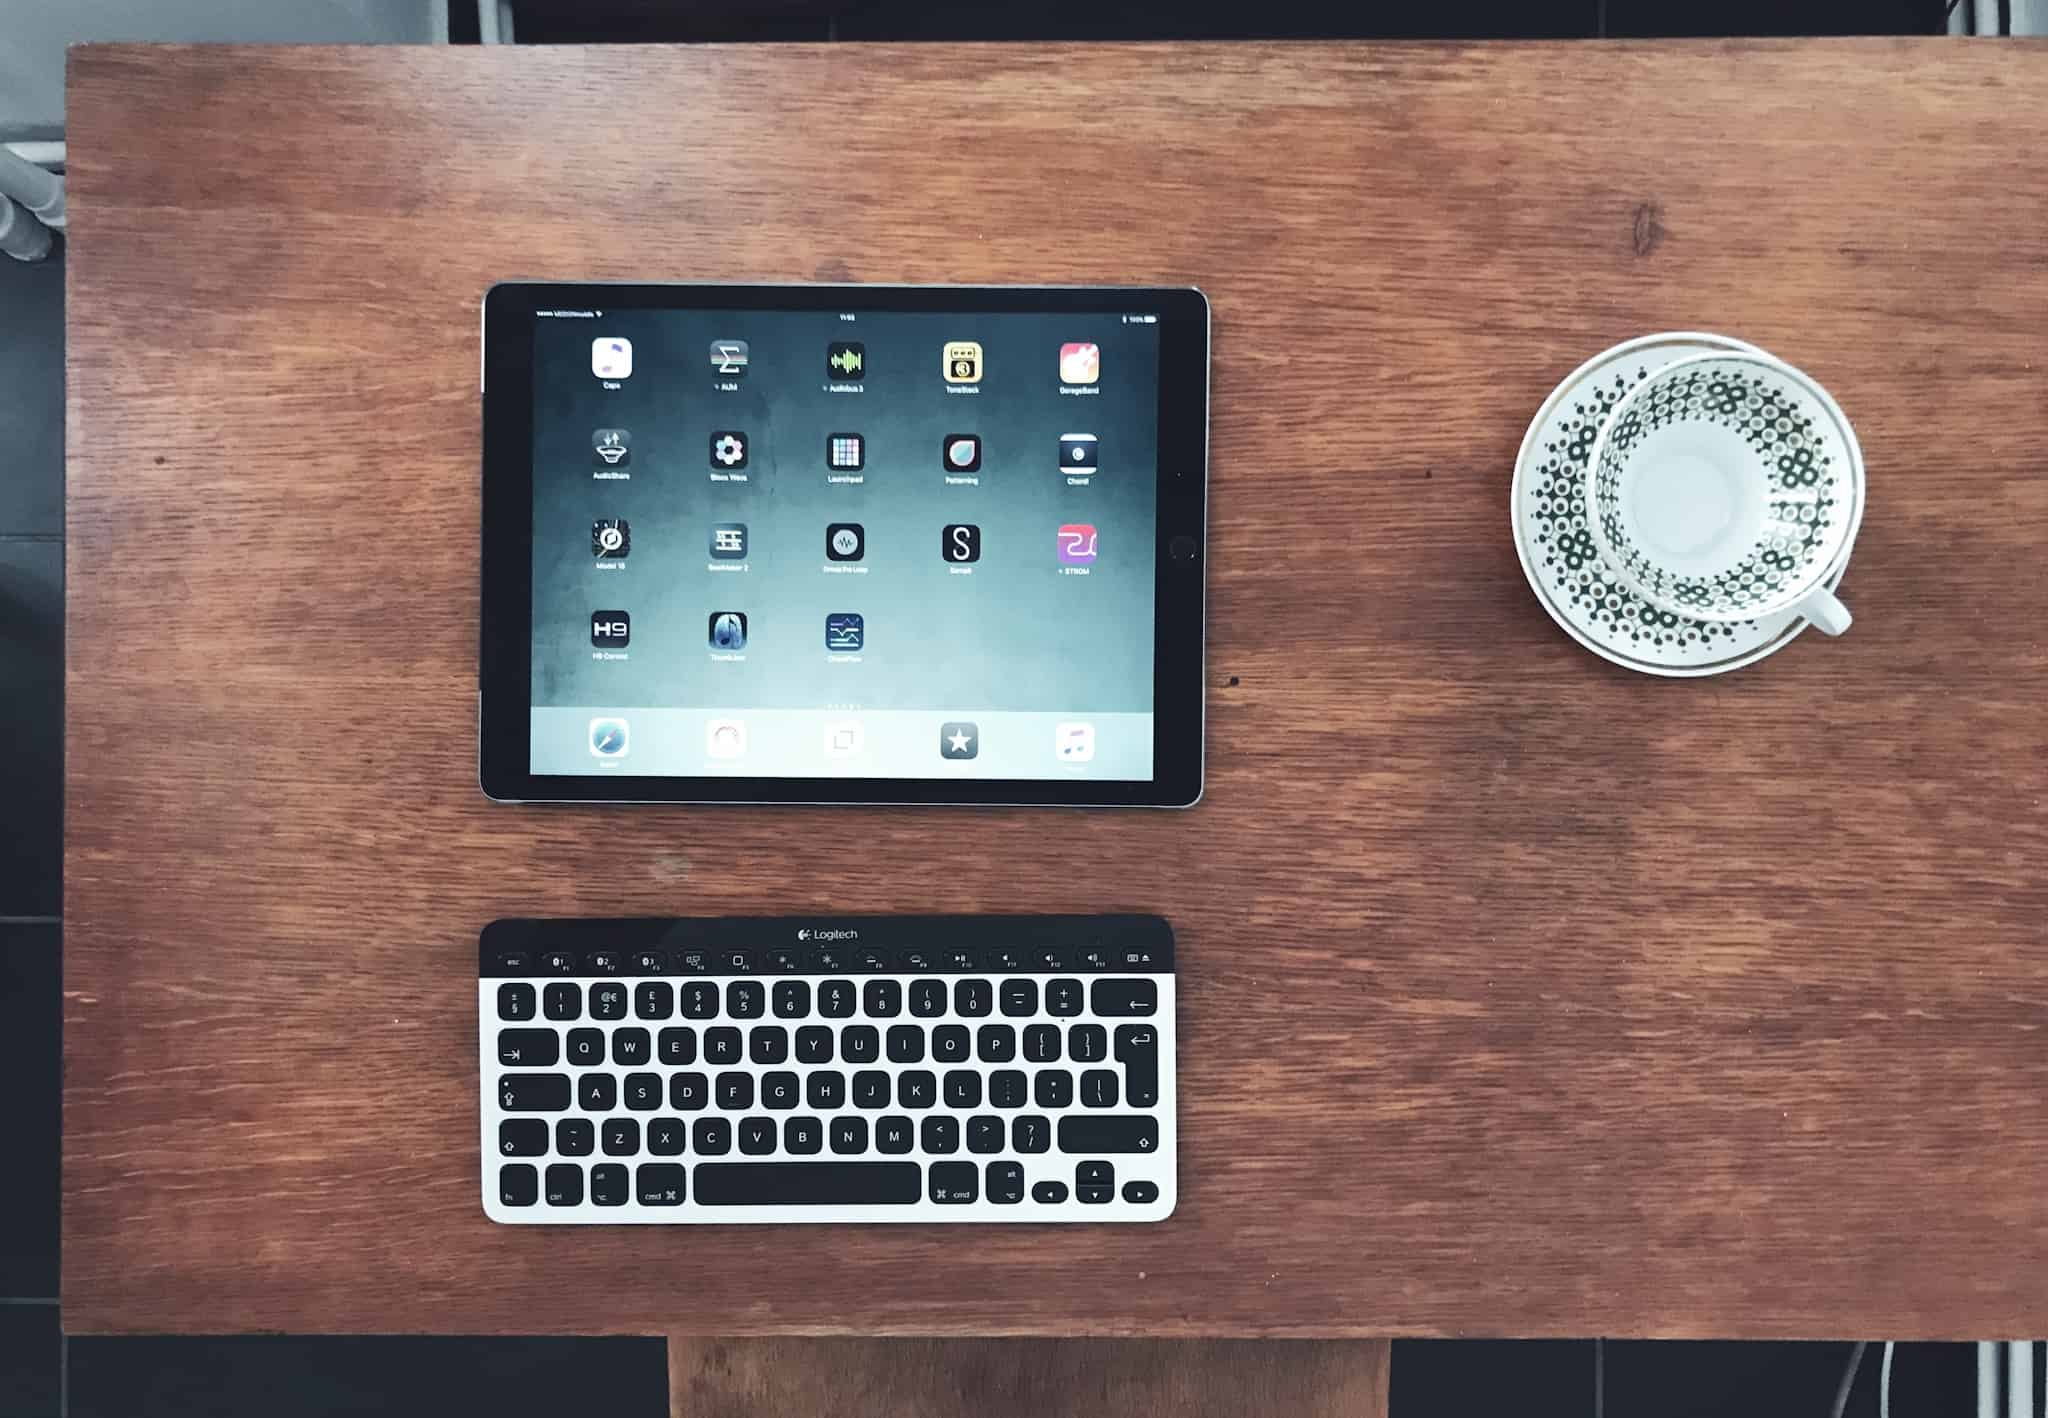 How to connect an external keyboard to your iPad | Cult of Mac